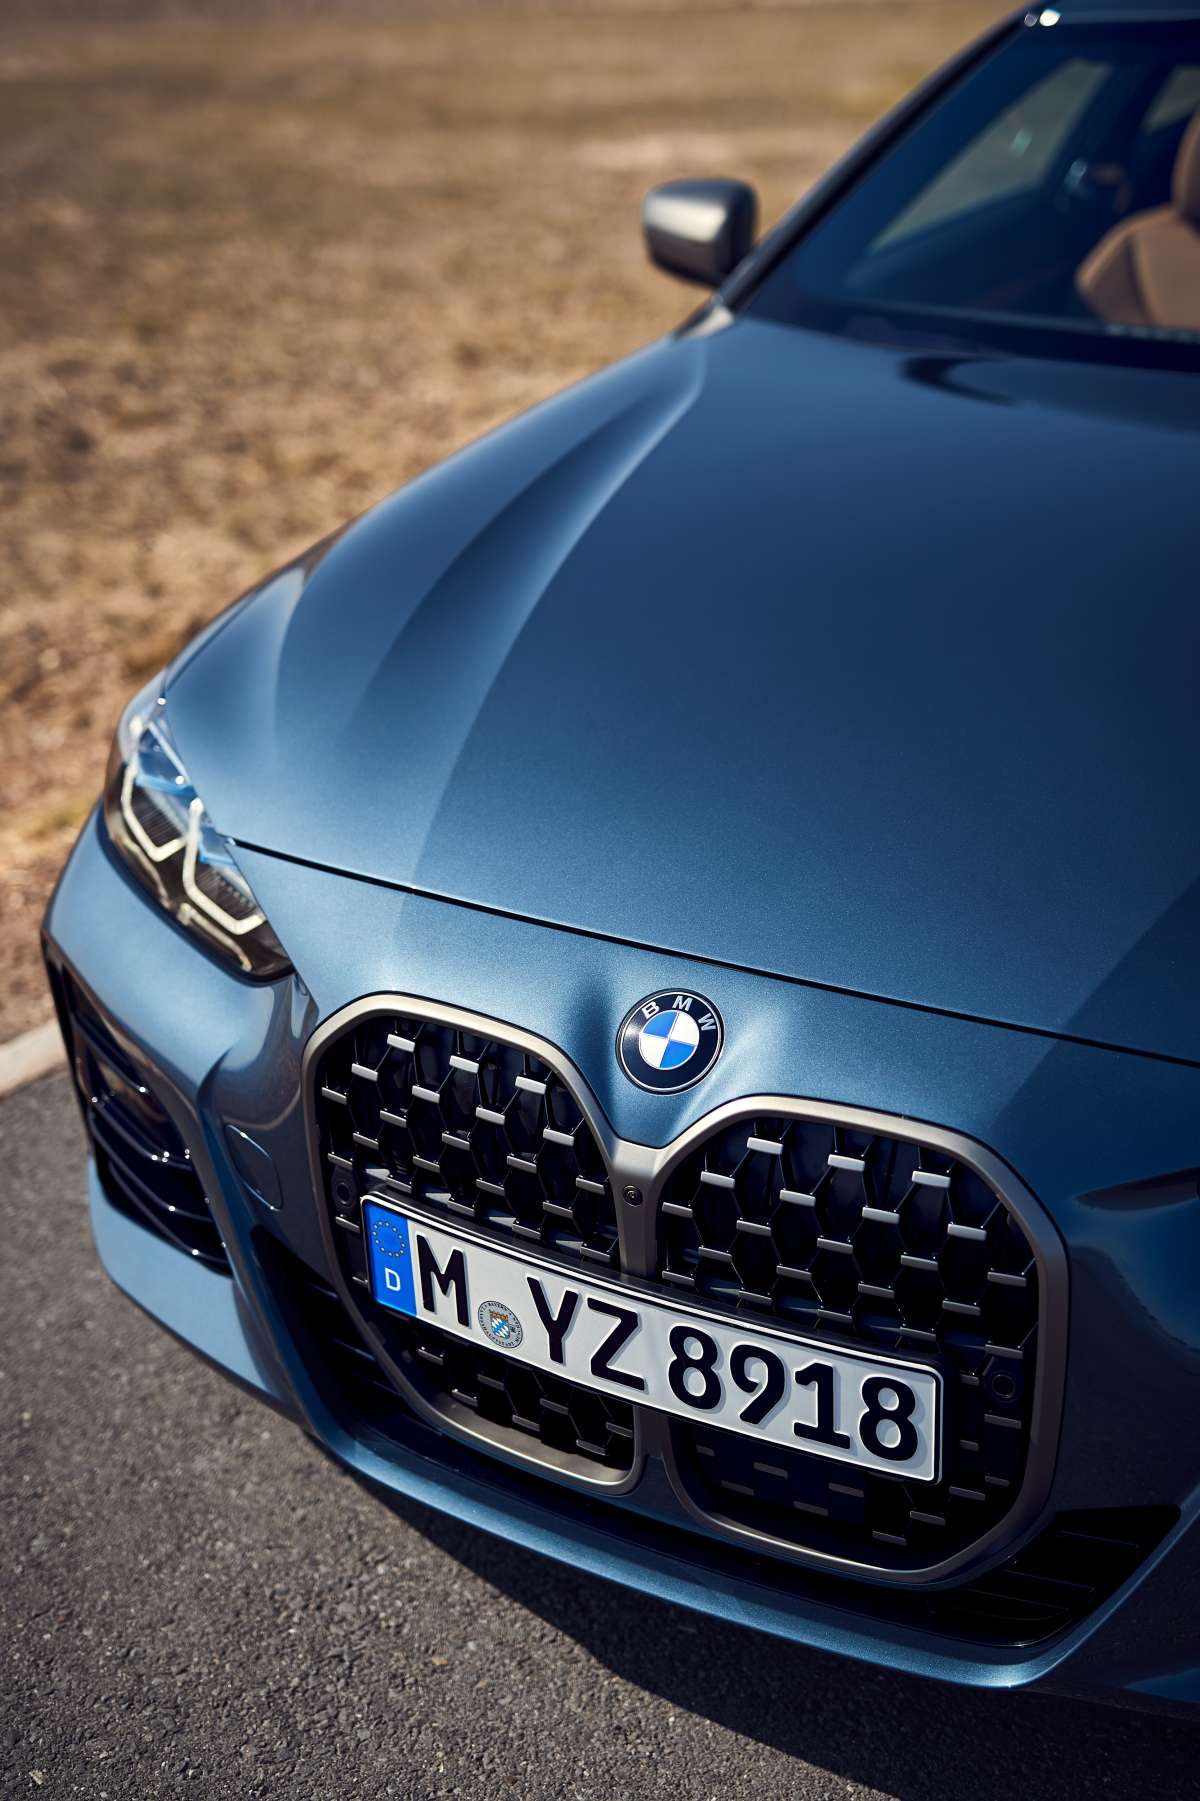 Bmw m440i xdrive Front Grille